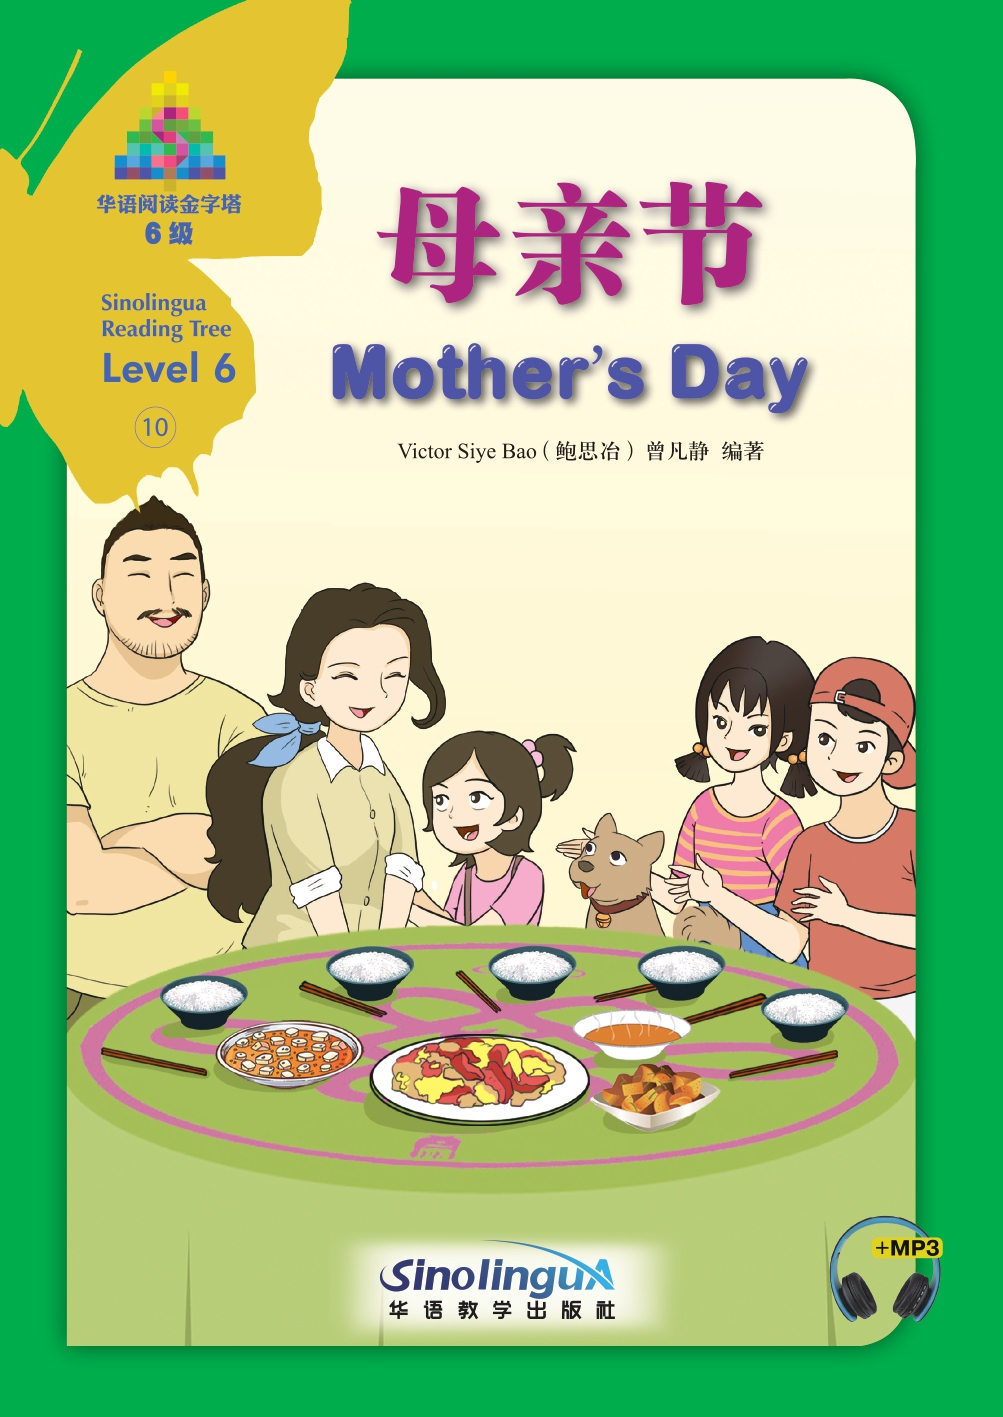 Sinolingua Reading Tree  Level 6 ⑩ <Mother's Day>